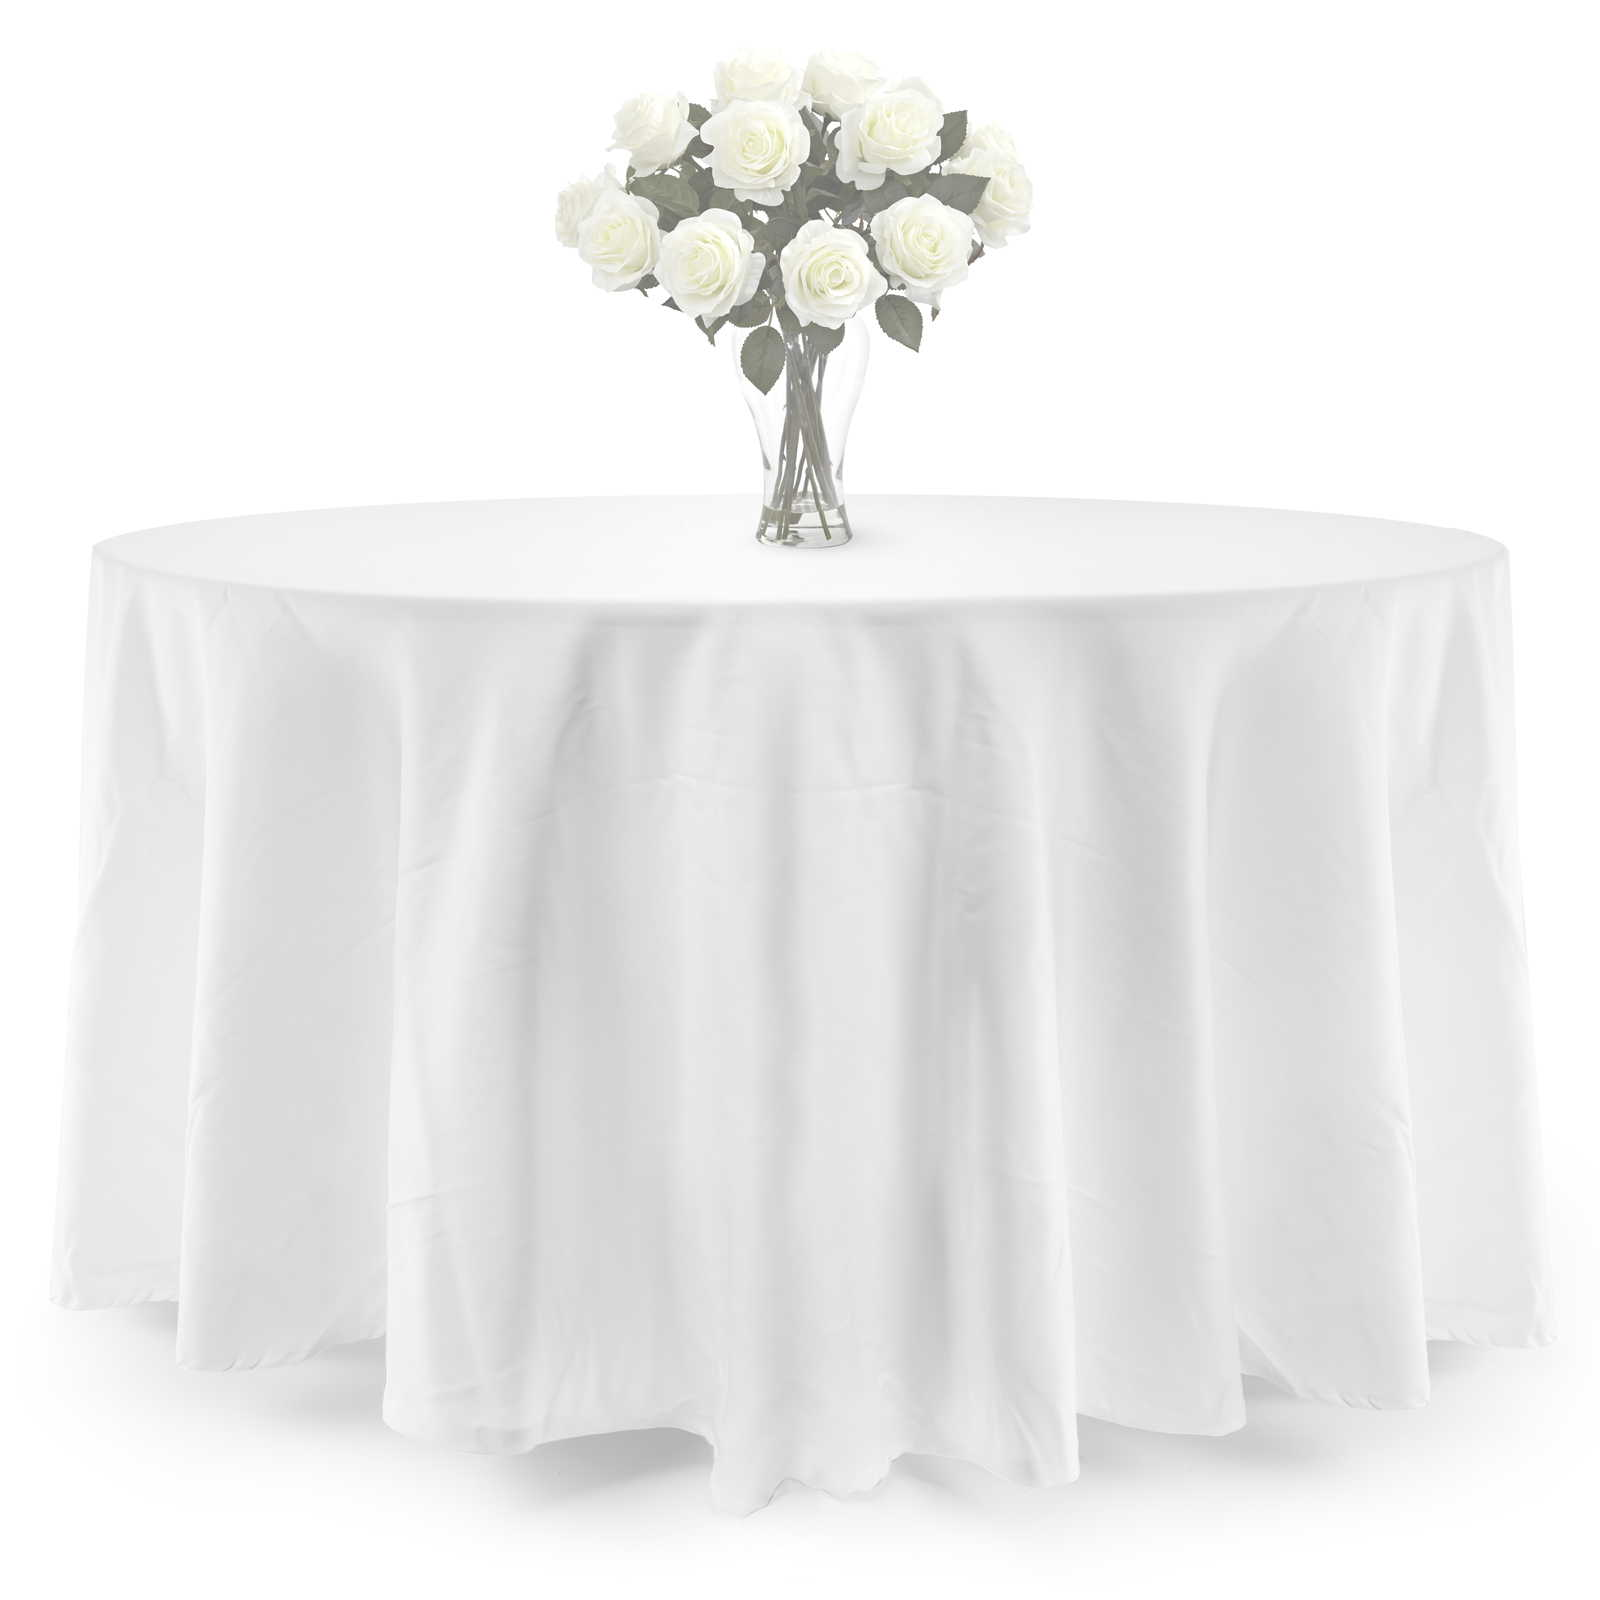 Lanns Linens Round Polyester Tablecloth Covers for Weddings, Banquets, or Restaurants... by Lann's Linens